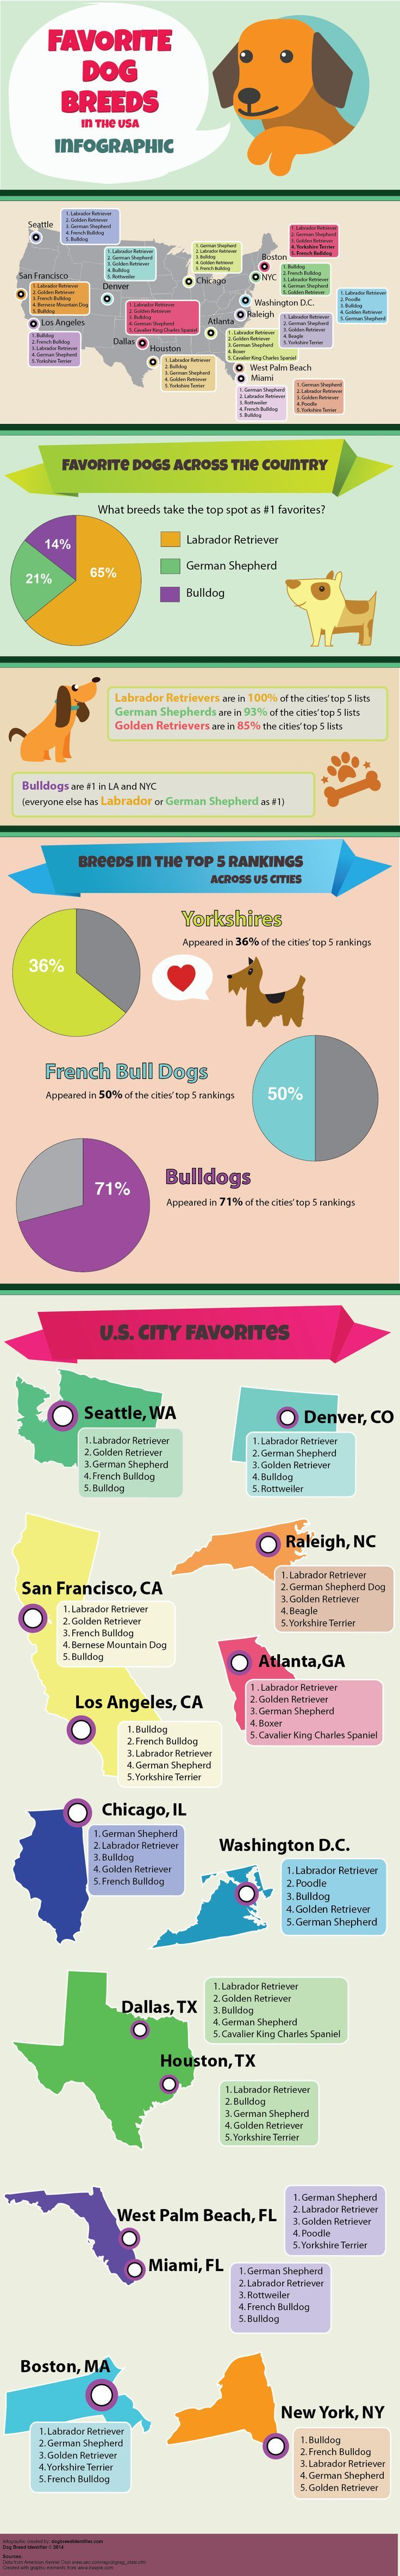 Top Dog Breeds in the USA Infographic...helpful when choosing a dog!